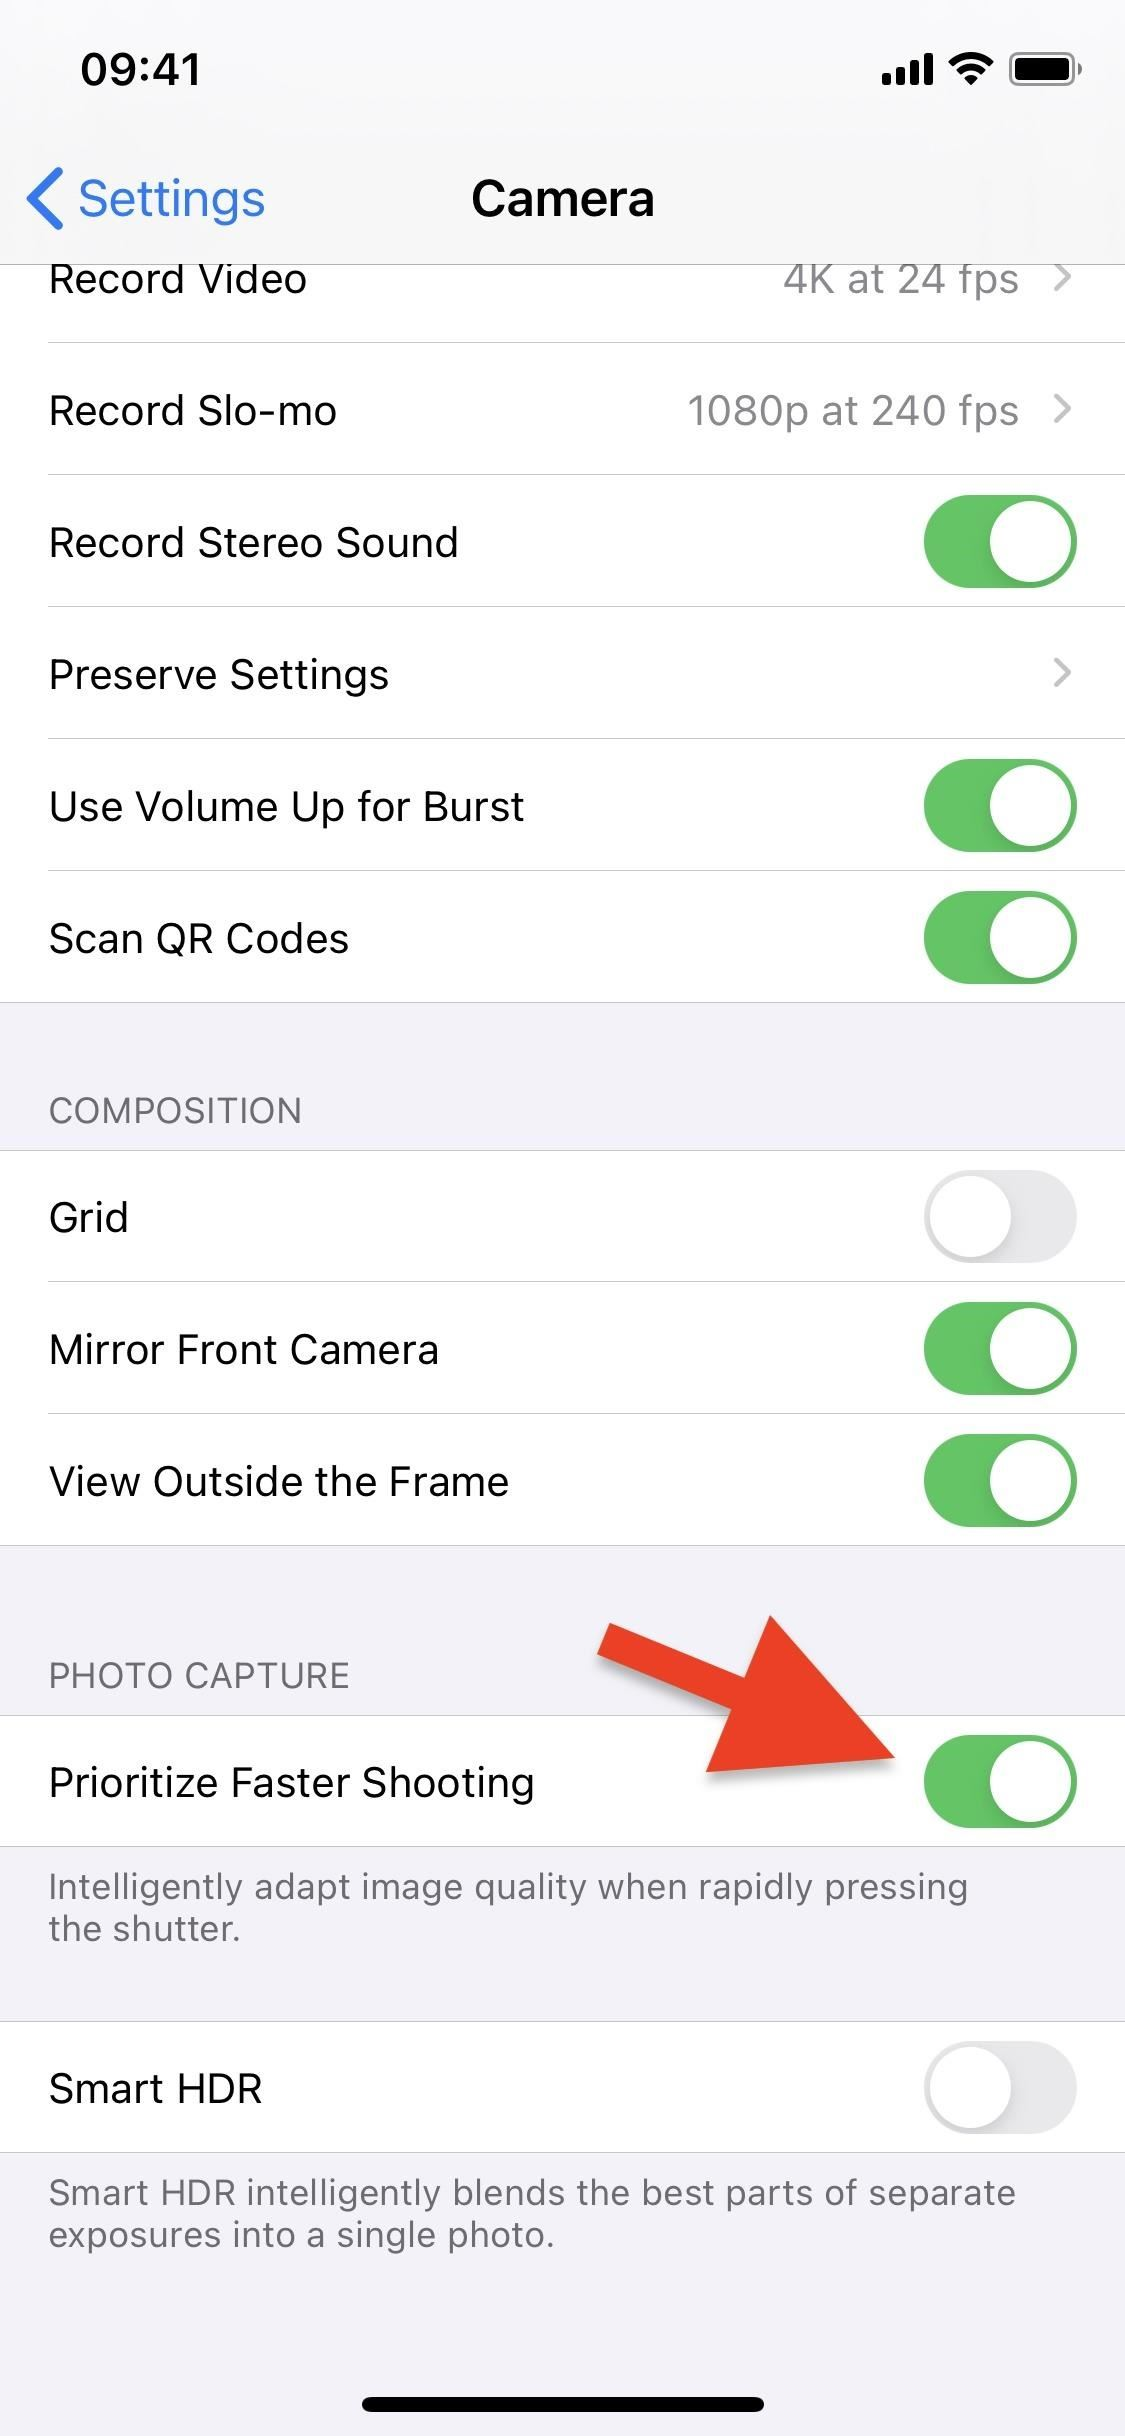 12 New Camera Features in iOS 14 That'll Make Your Photos & Videos Even Better